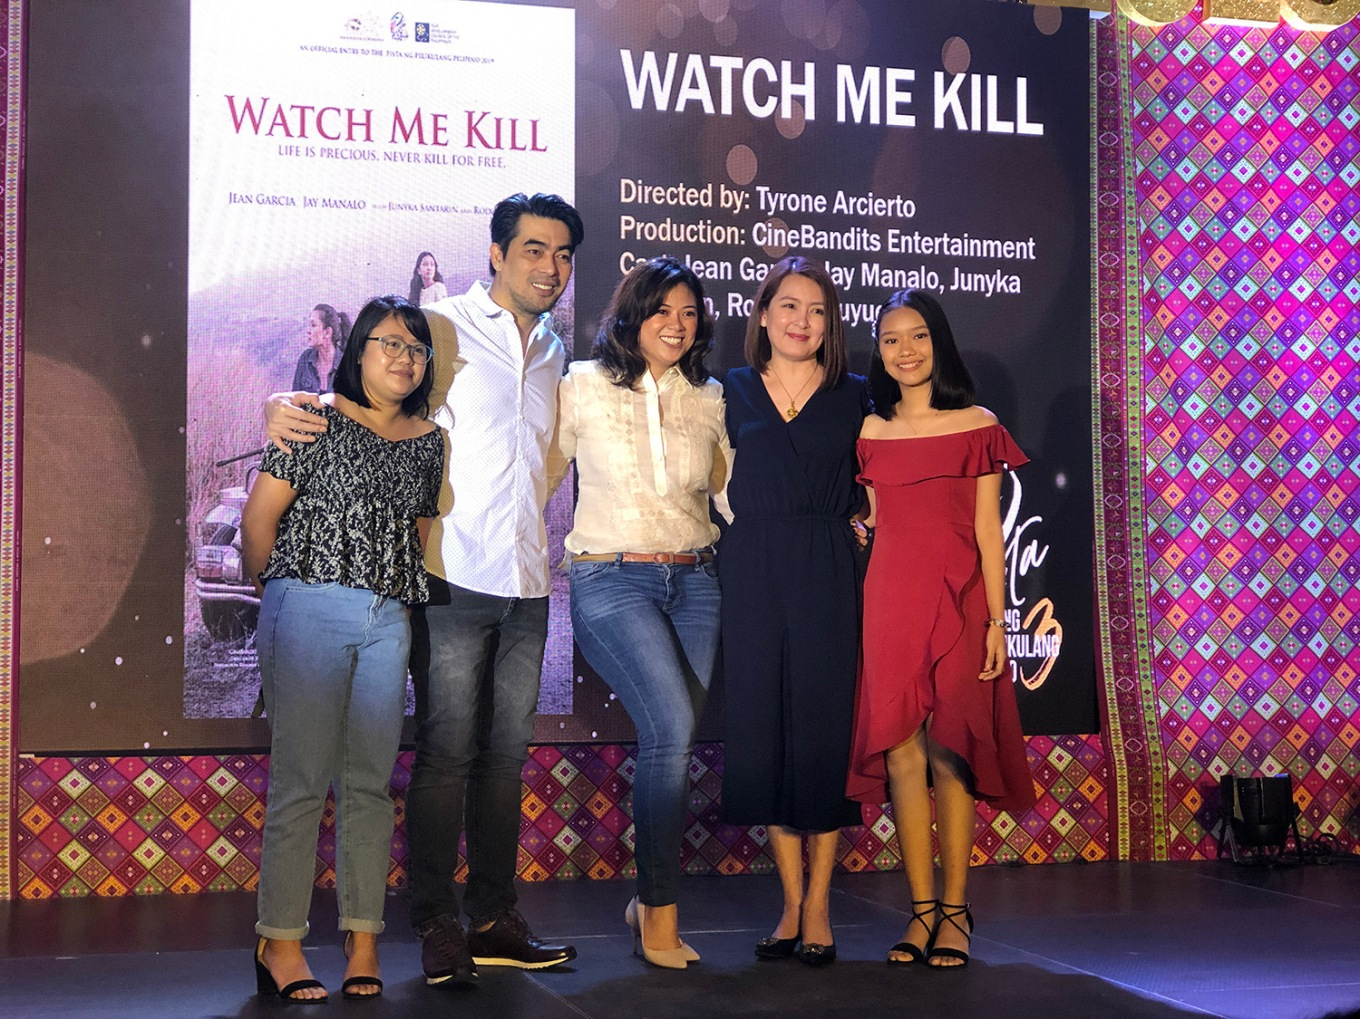 PPP2019 Watch Me Kill